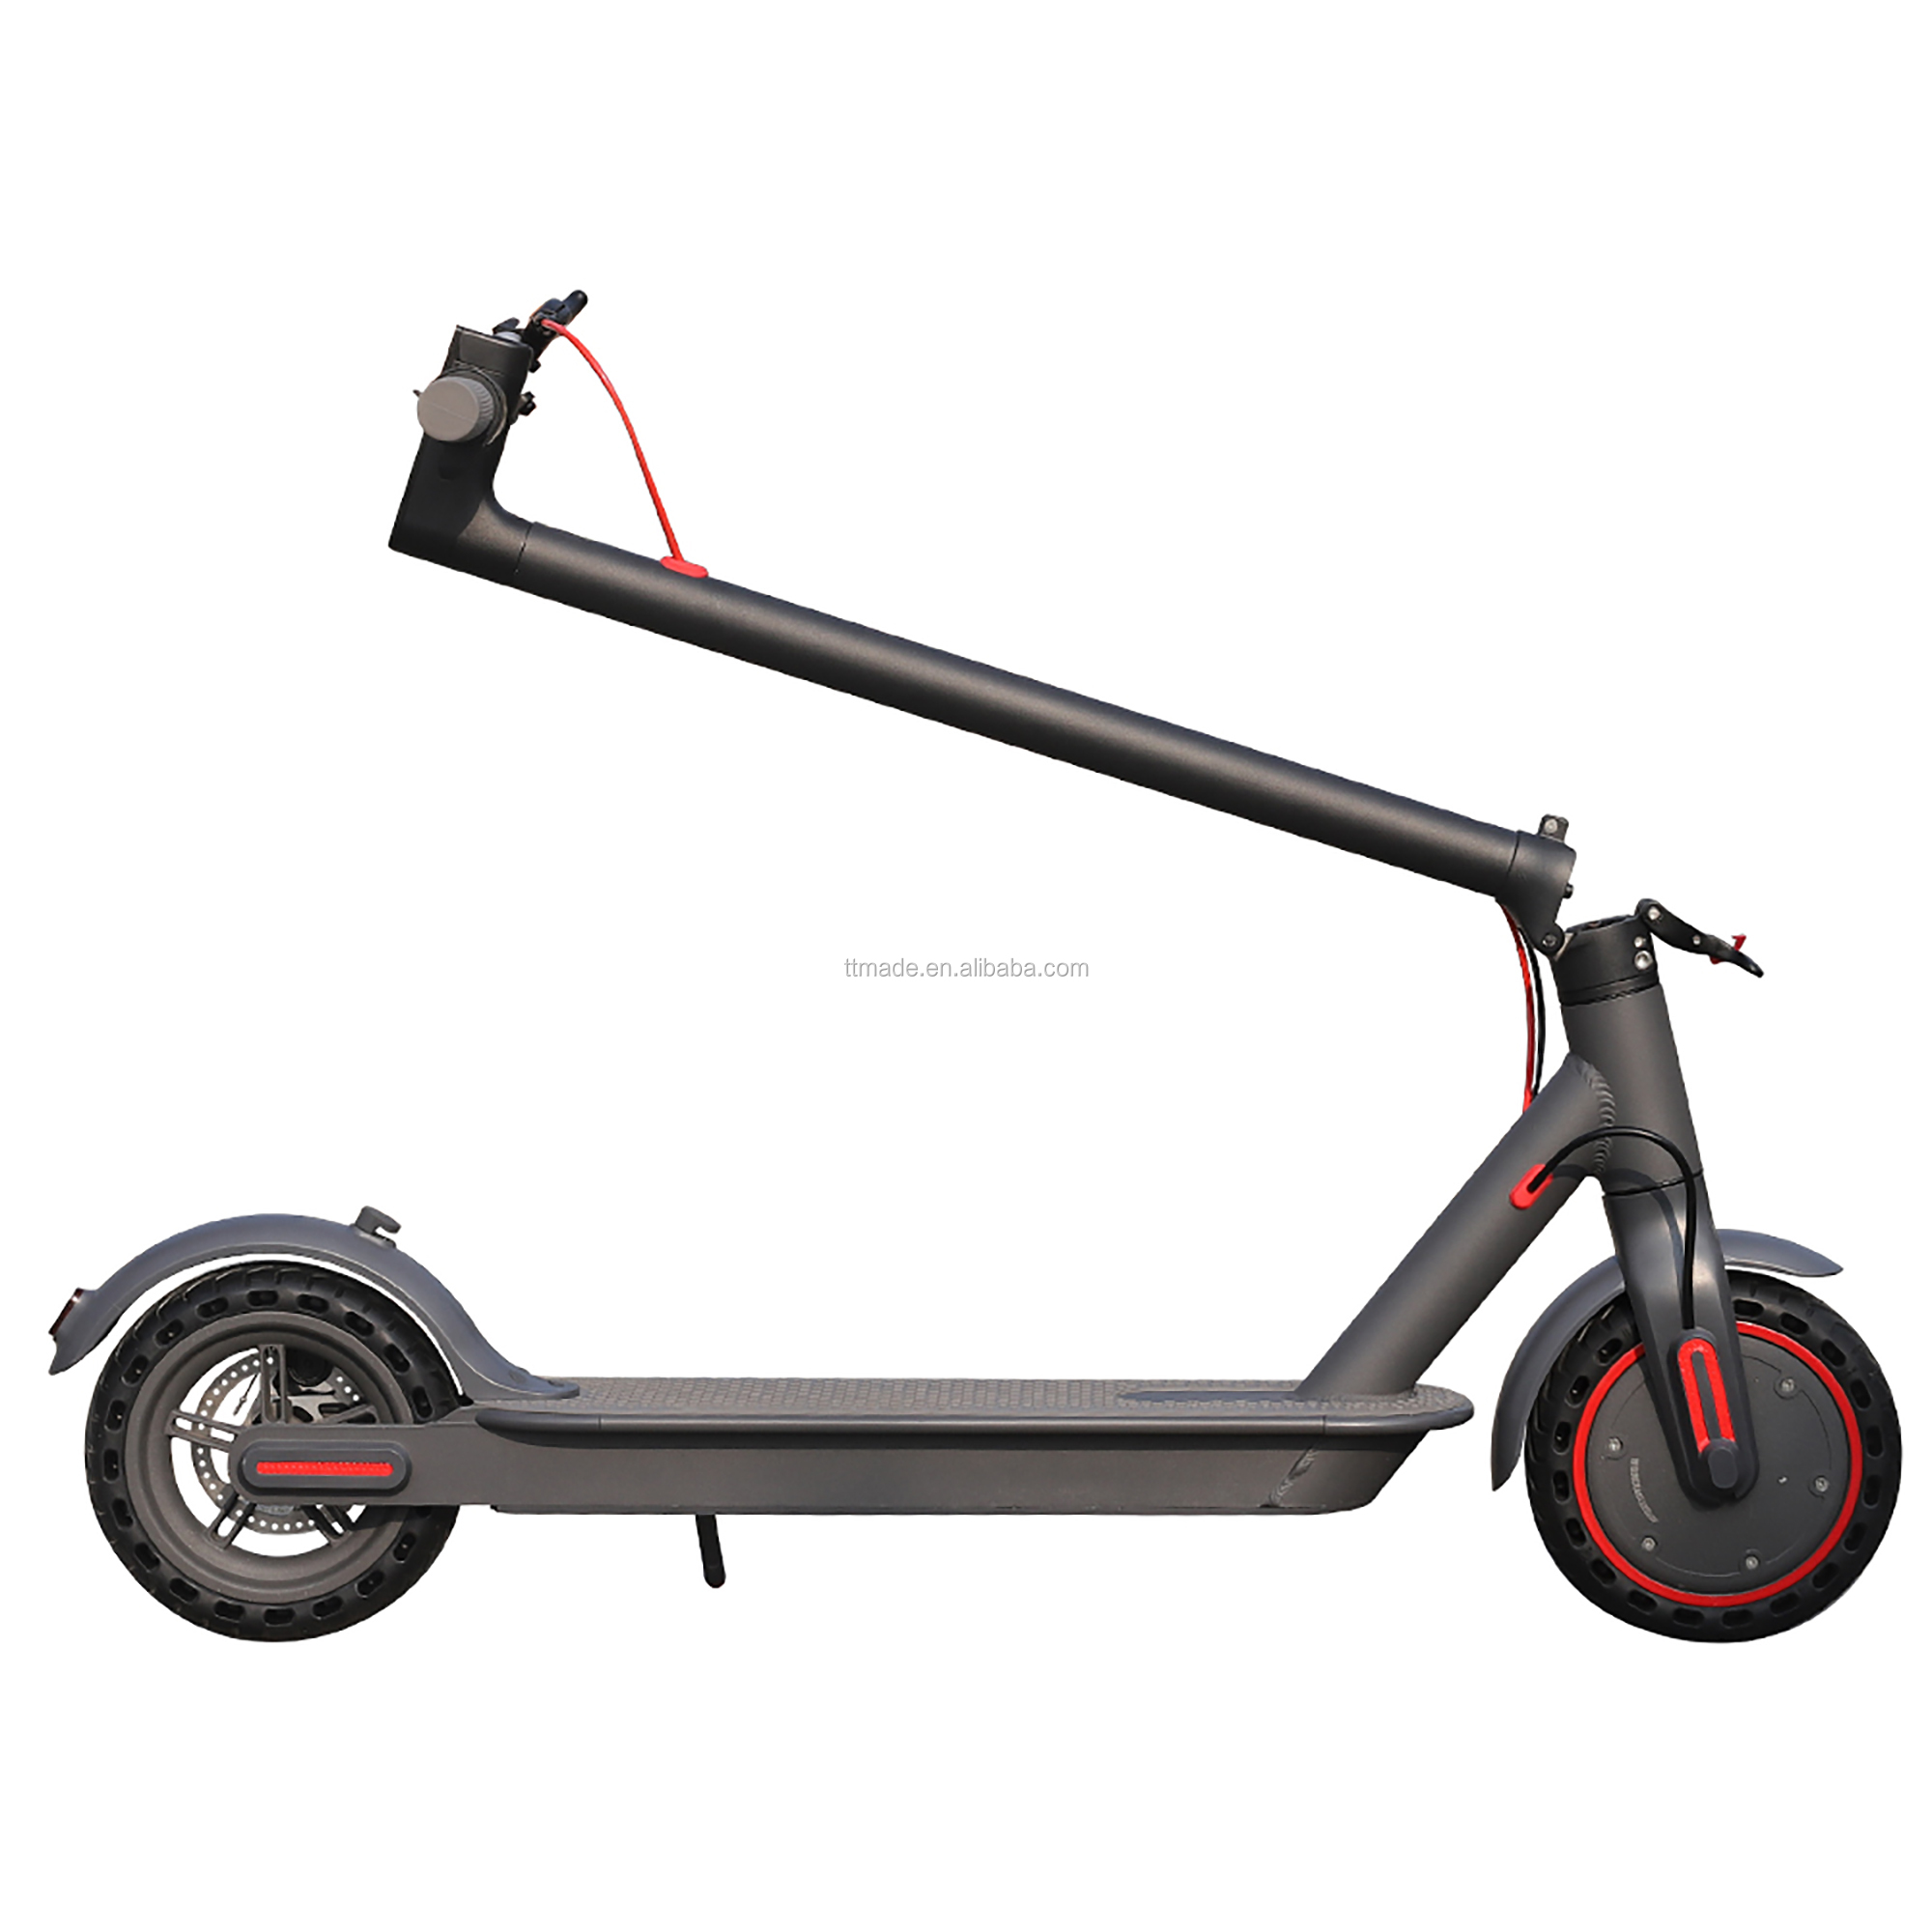 AOVOPRO Europe Poland Warehouse Drop Shipping 10.5Ah Battery 35KM Range M365Pro  With Smart APP Foldable Adult Electric Scooter